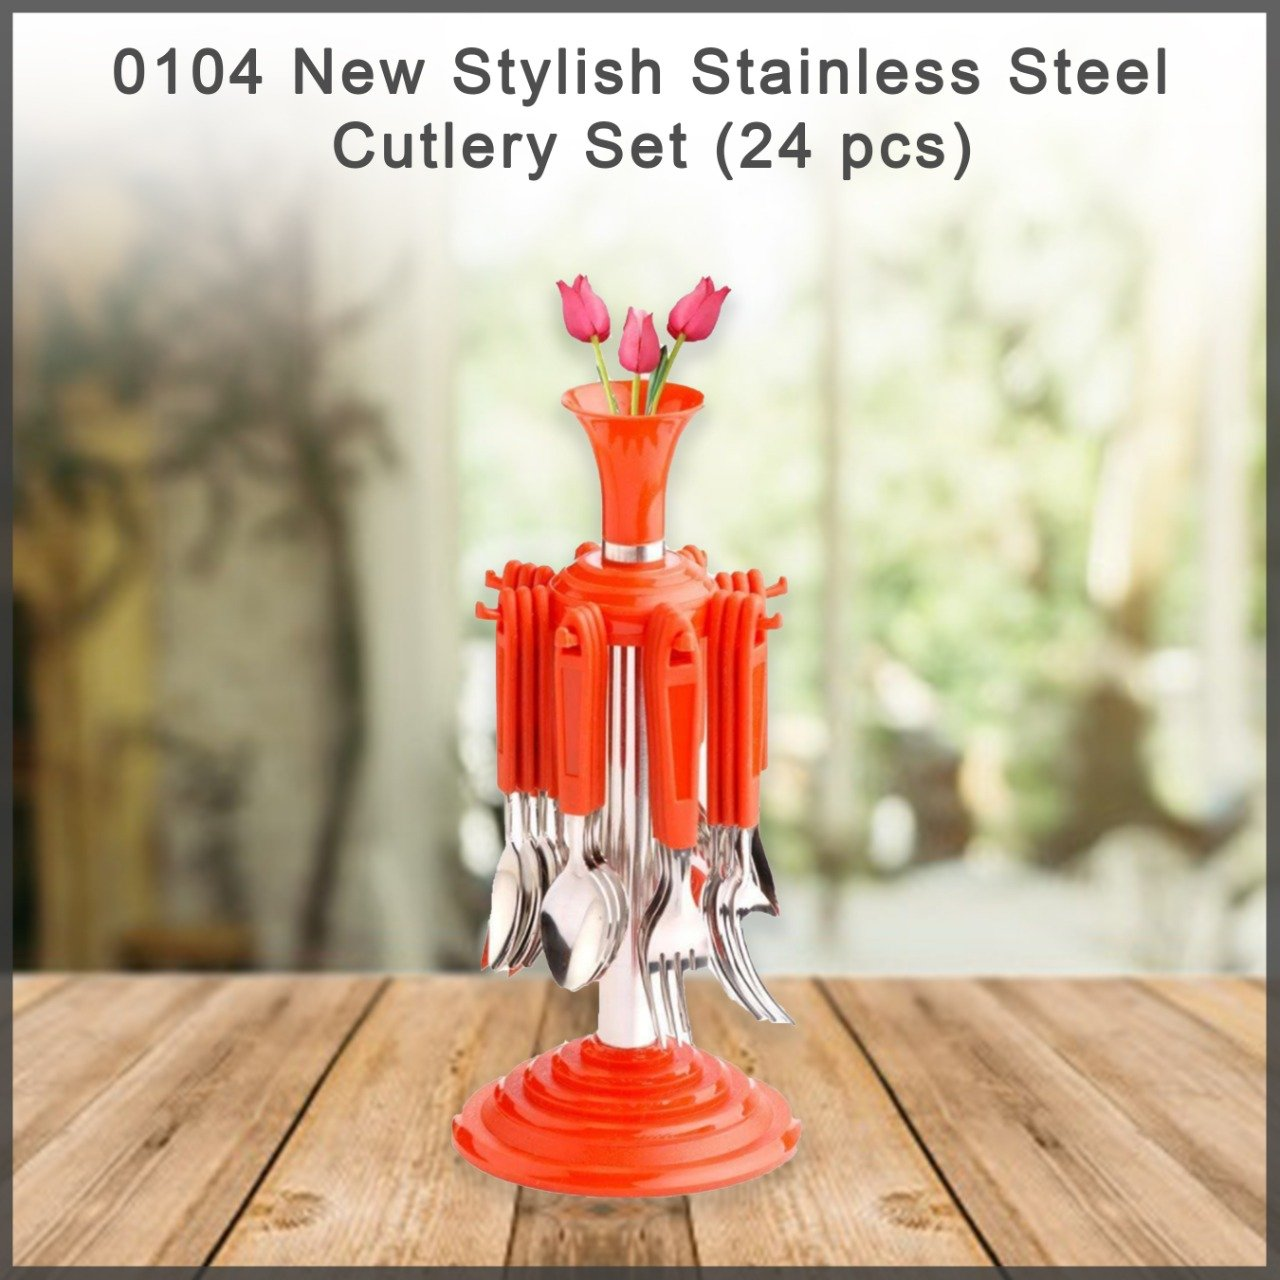 New Stylish Stainless Steel Cutlery Set (24 pcs)